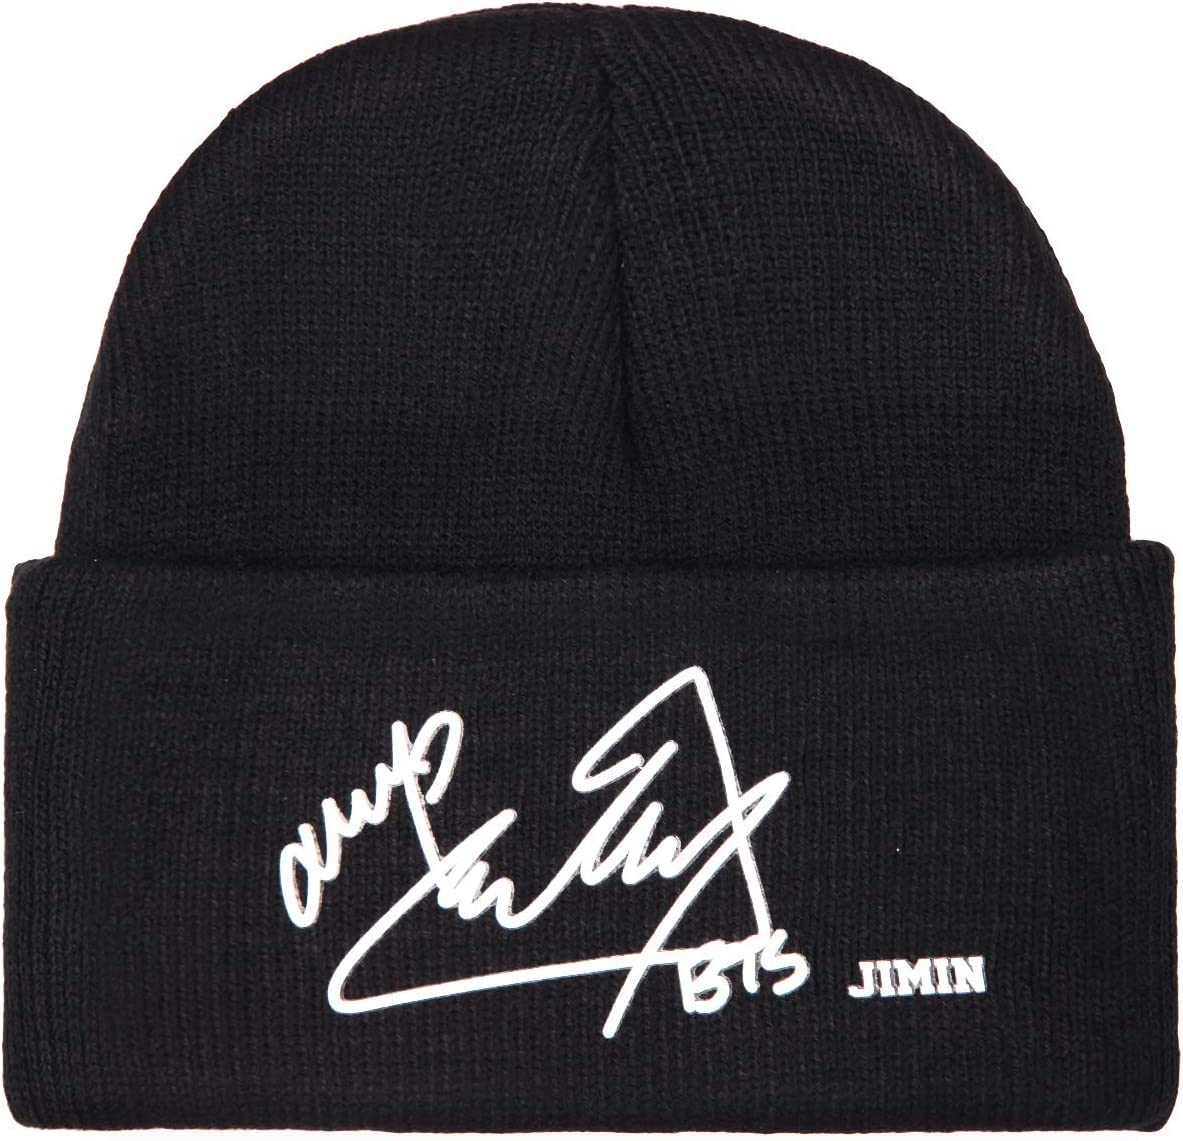 holly joll BTS Knit Hat Pom Bangtan Boys Sign Beanie Casual Sports Love Yourself Unisex Snapback Hip Hop Gift for BTS A.R.M.Y